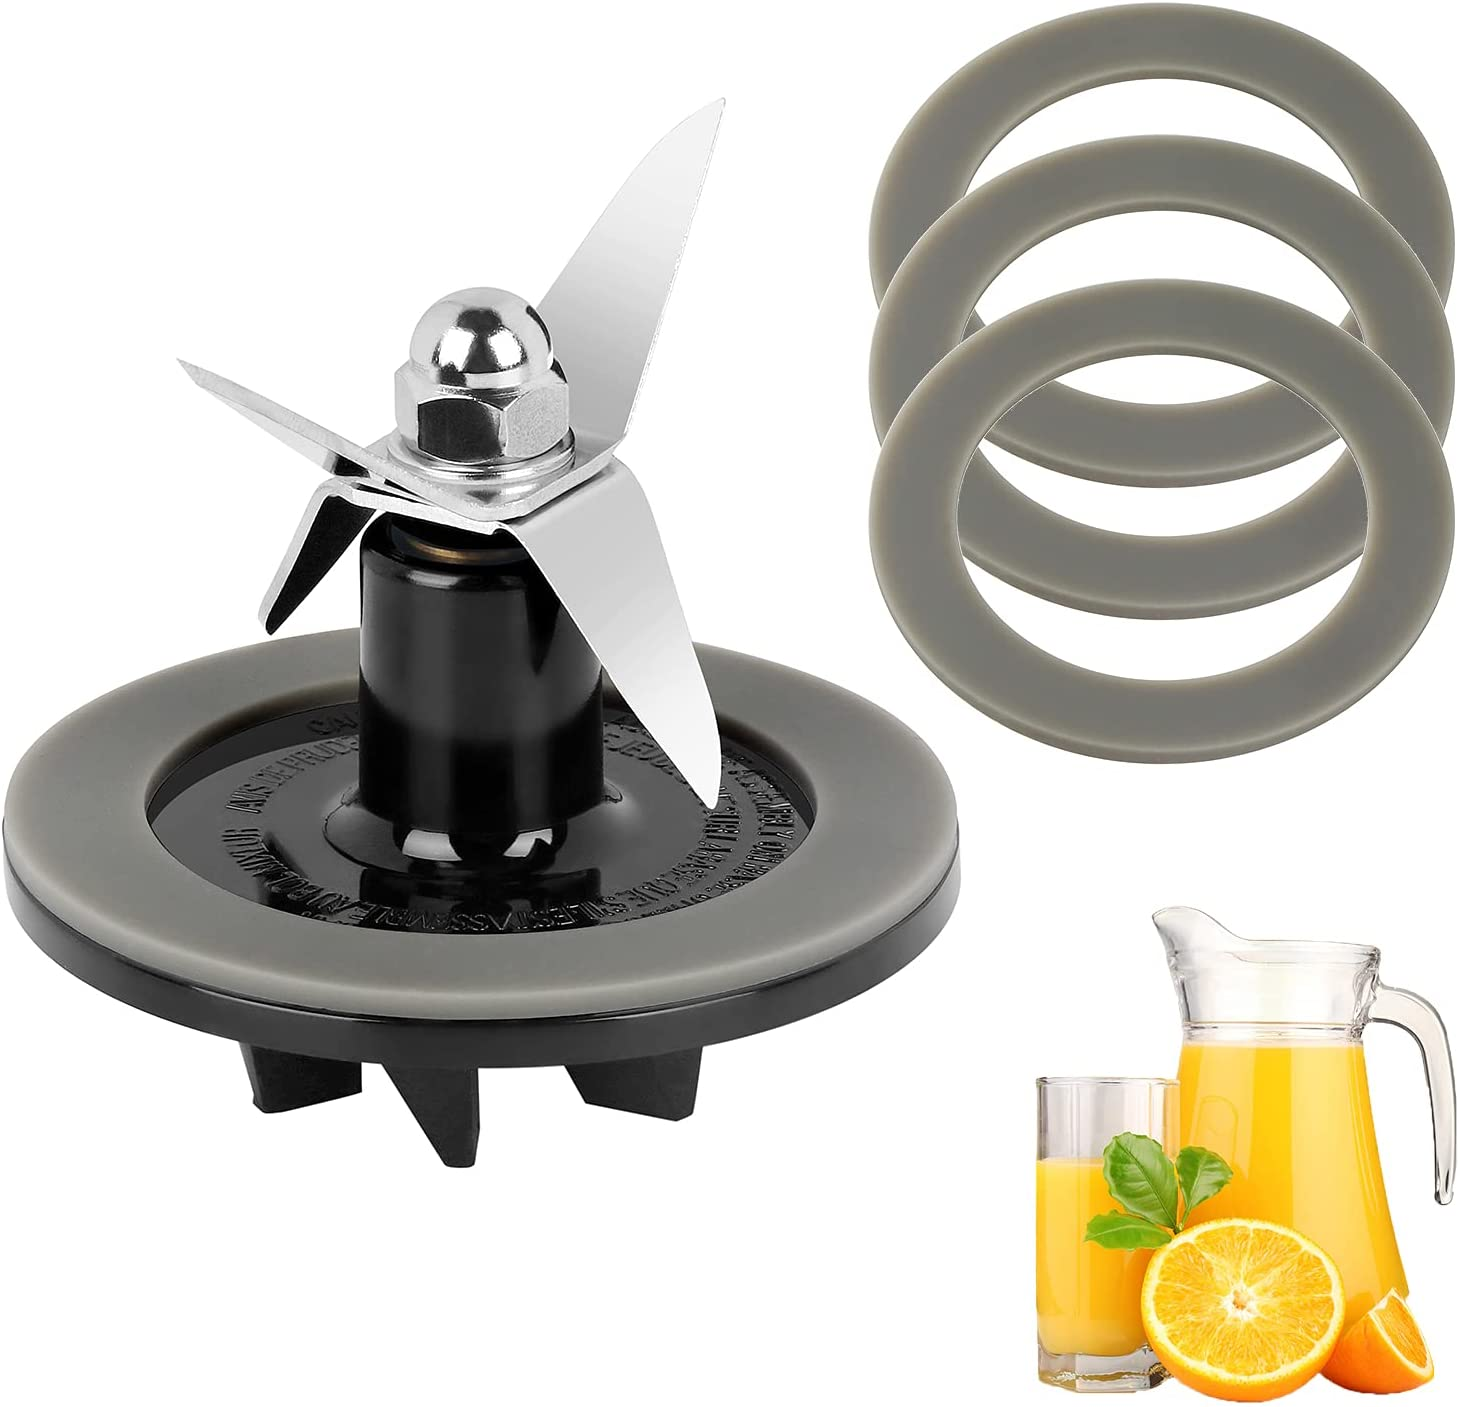 Replacement Parts Blender Blade Assembly with 3 Pieces Blender Gaskets,Fit for Cuisinart CBT-500, SB5600, CB600